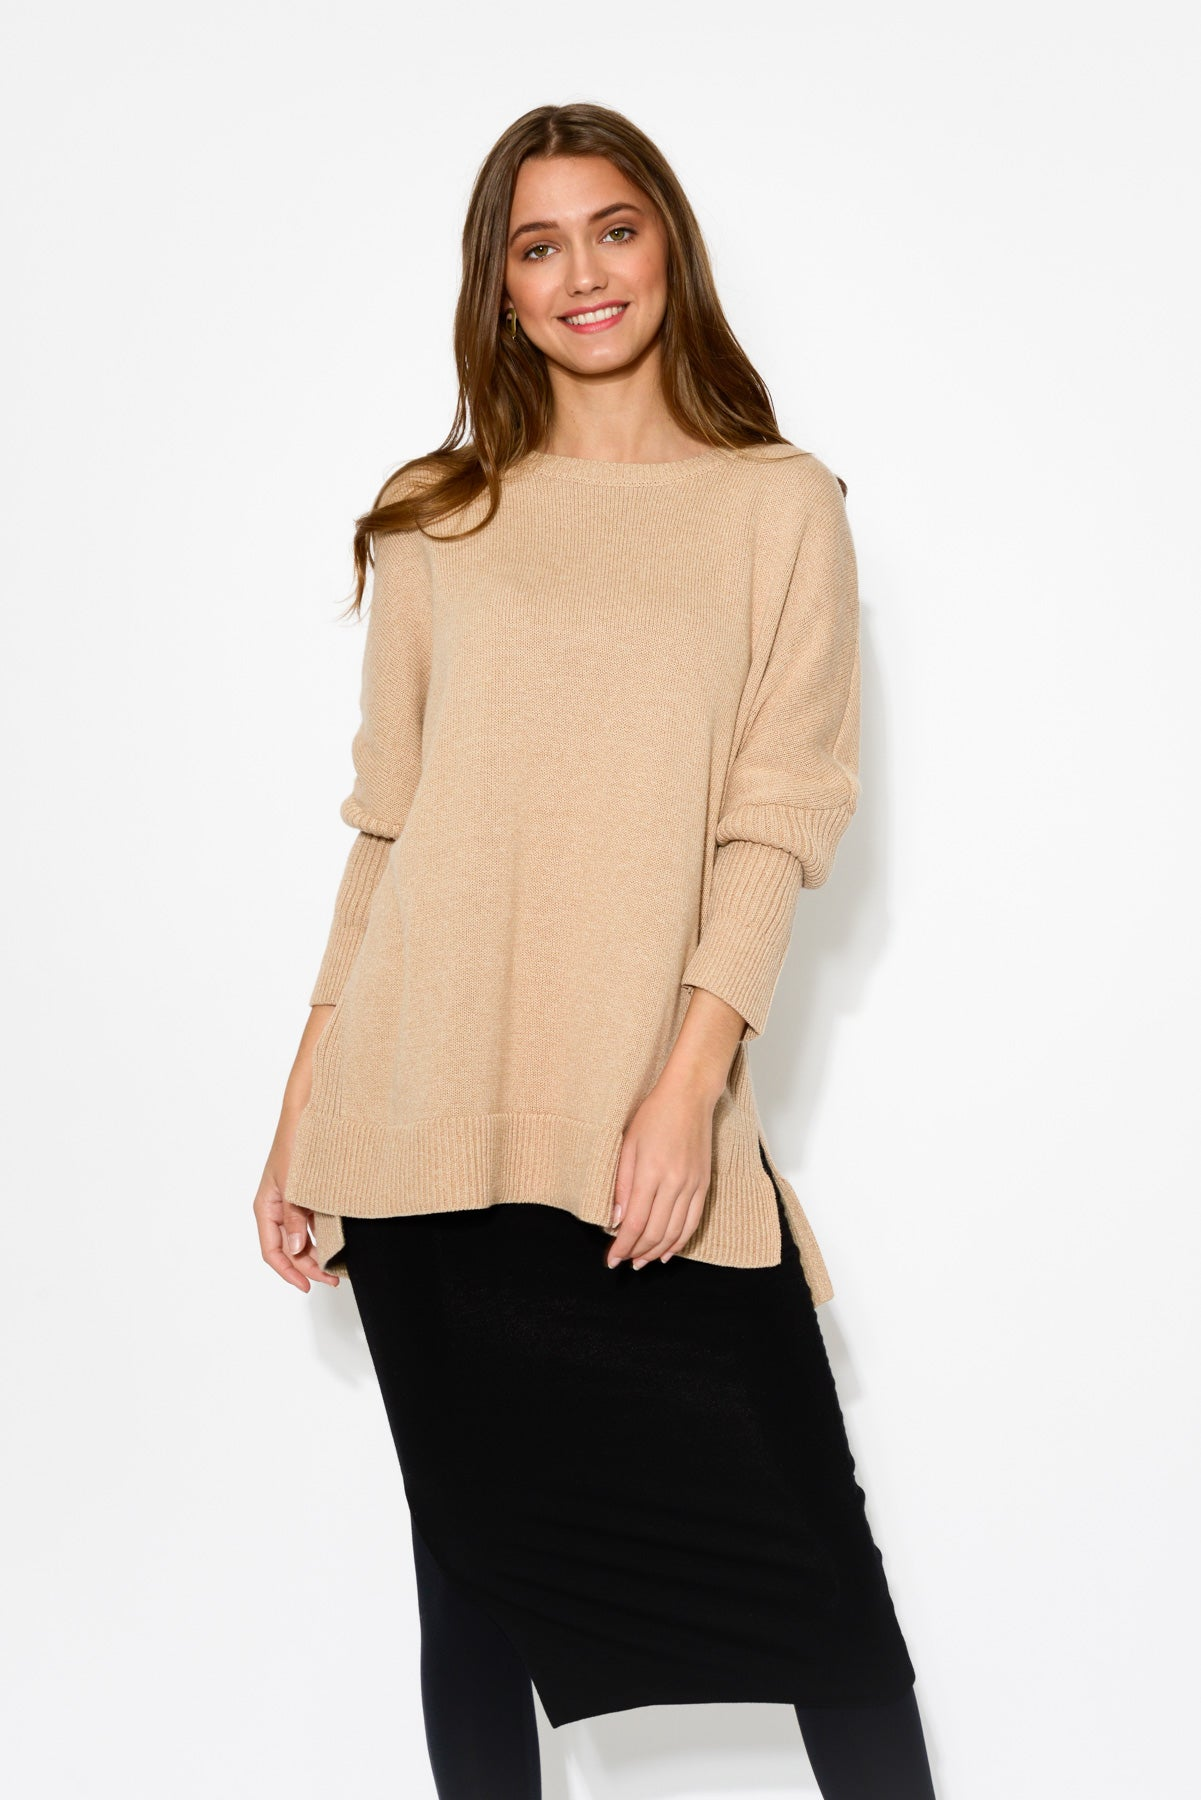 Beige Relaxed Cotton Knit Jumper - Blue Bungalow